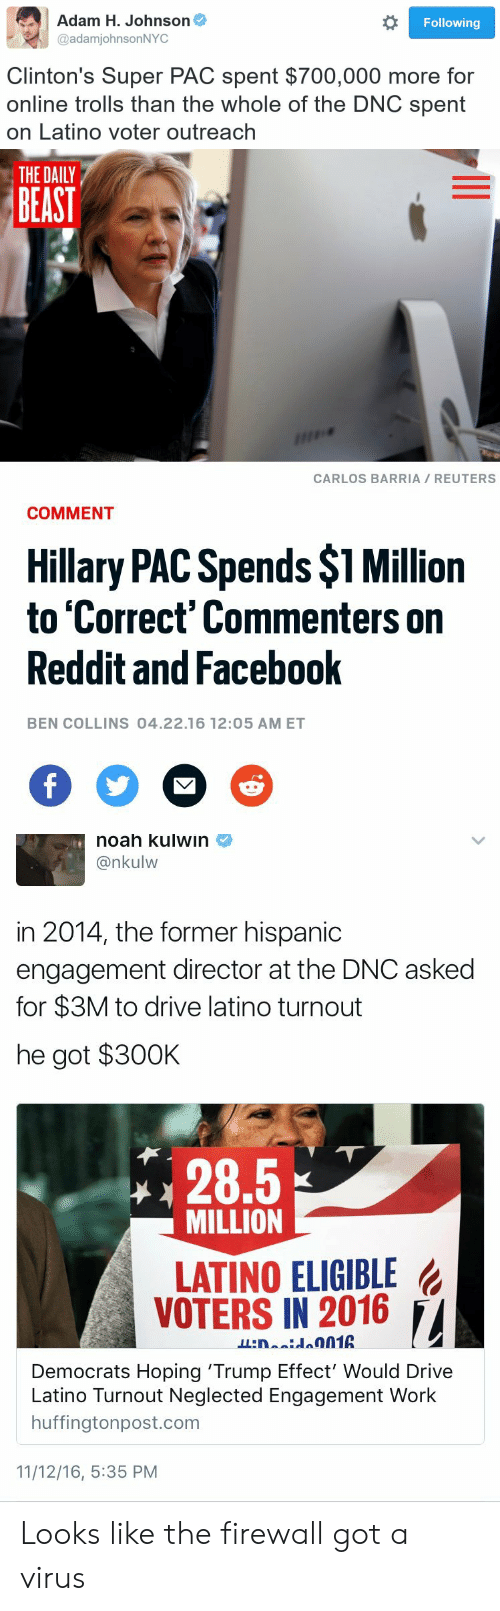 Facebook, Reddit, and Work: Adam H. Johnson  @adamjohnsonNYC  Following  Clinton's Super PAC spent $700,000 more for  online trolls than the whole of the DNC spent  on Latino voter outreach   THE DAILY  BEAST  CARLOS BARRIA REUTERS  COMMENT  Hillary PAC Spends $1 Million  to 'Correct' Commenters on  Reddit and Facebook  2  BEN COLLINS 04.22.16 12:05 AM ET   noah kulwin  @nkulw  in 2014, the former hispanic  engagement director at the DNC asked  for $3M to drive latino turnout  he got $30OK  28.5  MILLION  LATINO ELIGIBLE  VOTERS IN 2016 /,  Democrats Hoping 'Trump Effect' Would Drive  no Turnout Neglected Engagement Work  huffingtonpost.com  11/12/16, 5:35 PM Looks like the firewall got a virus